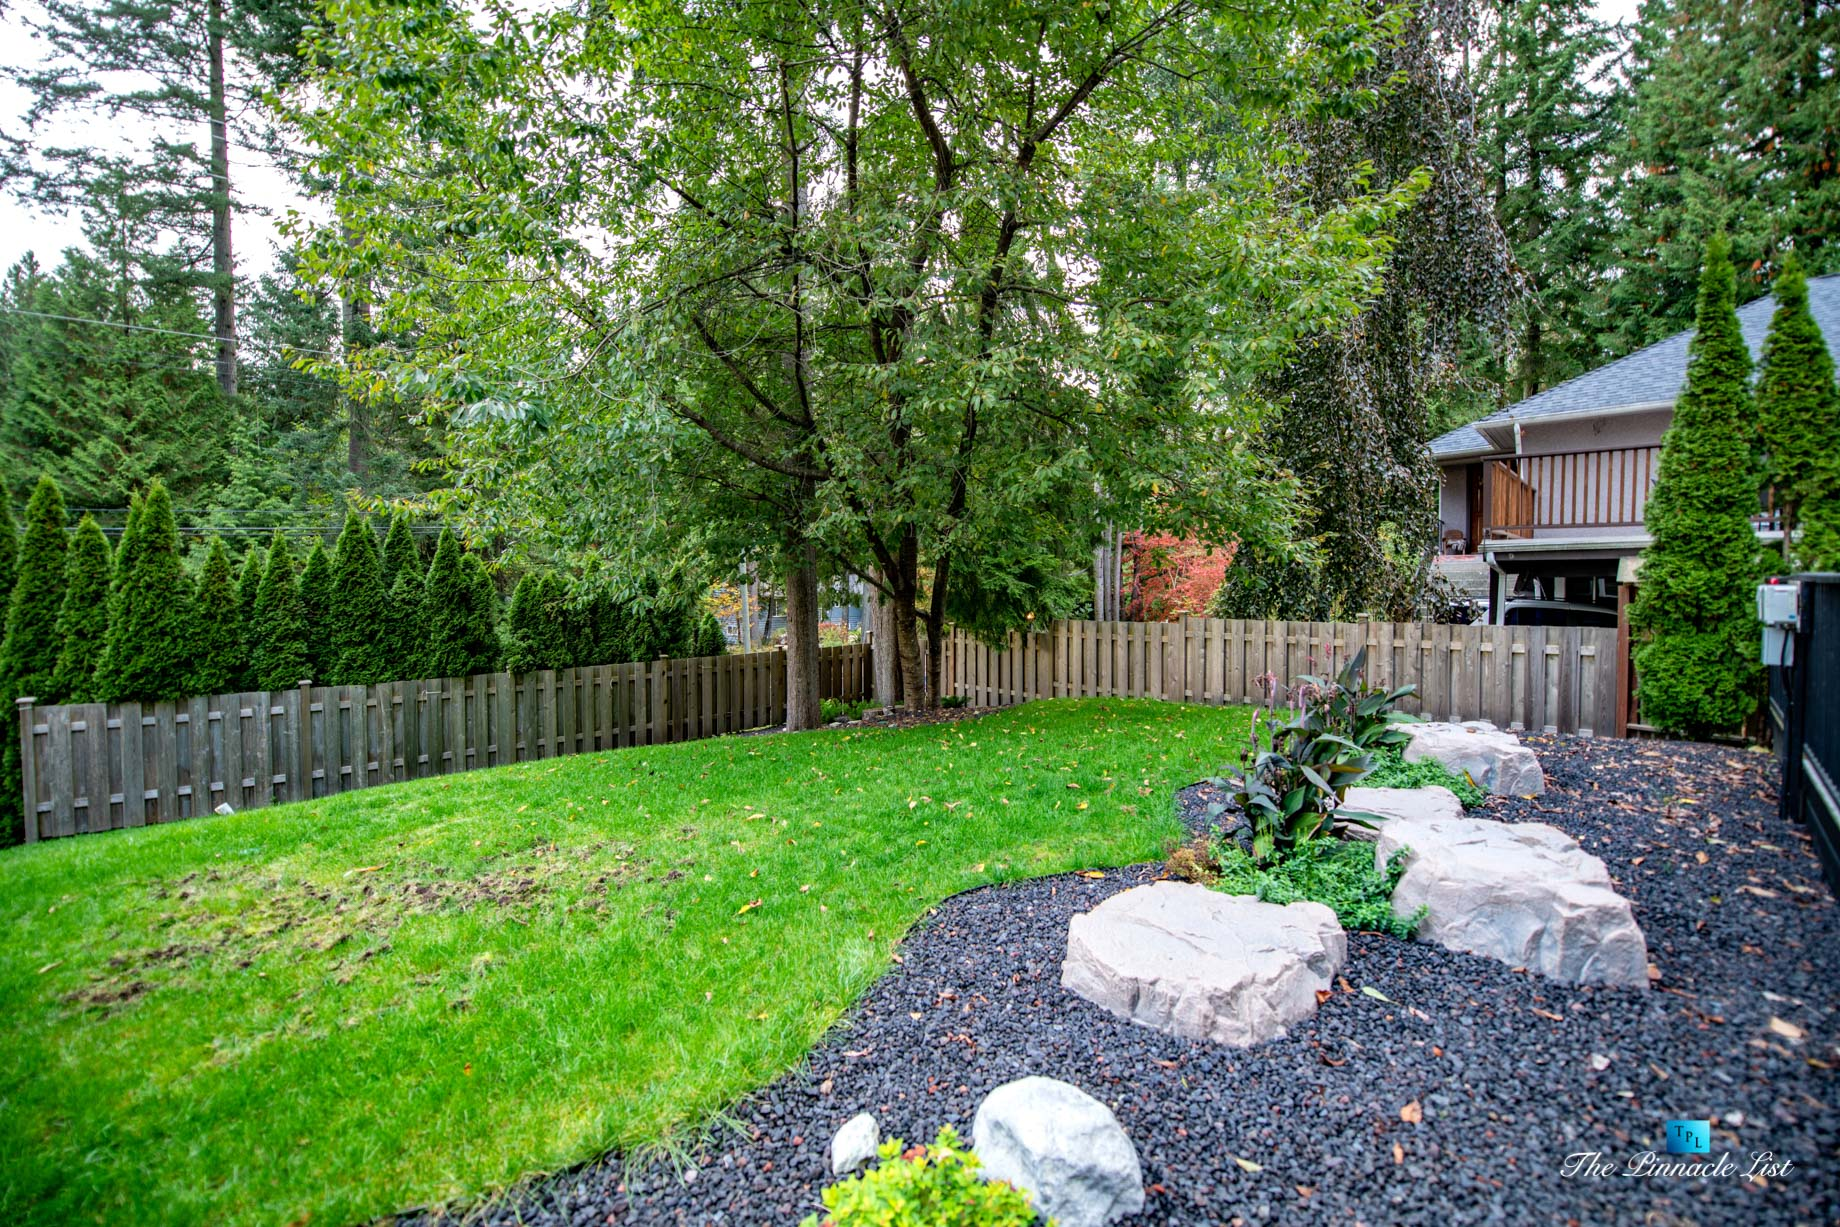 2366 Sunnyside Rd, Anmore, BC, Canada - Exterior Front Yard